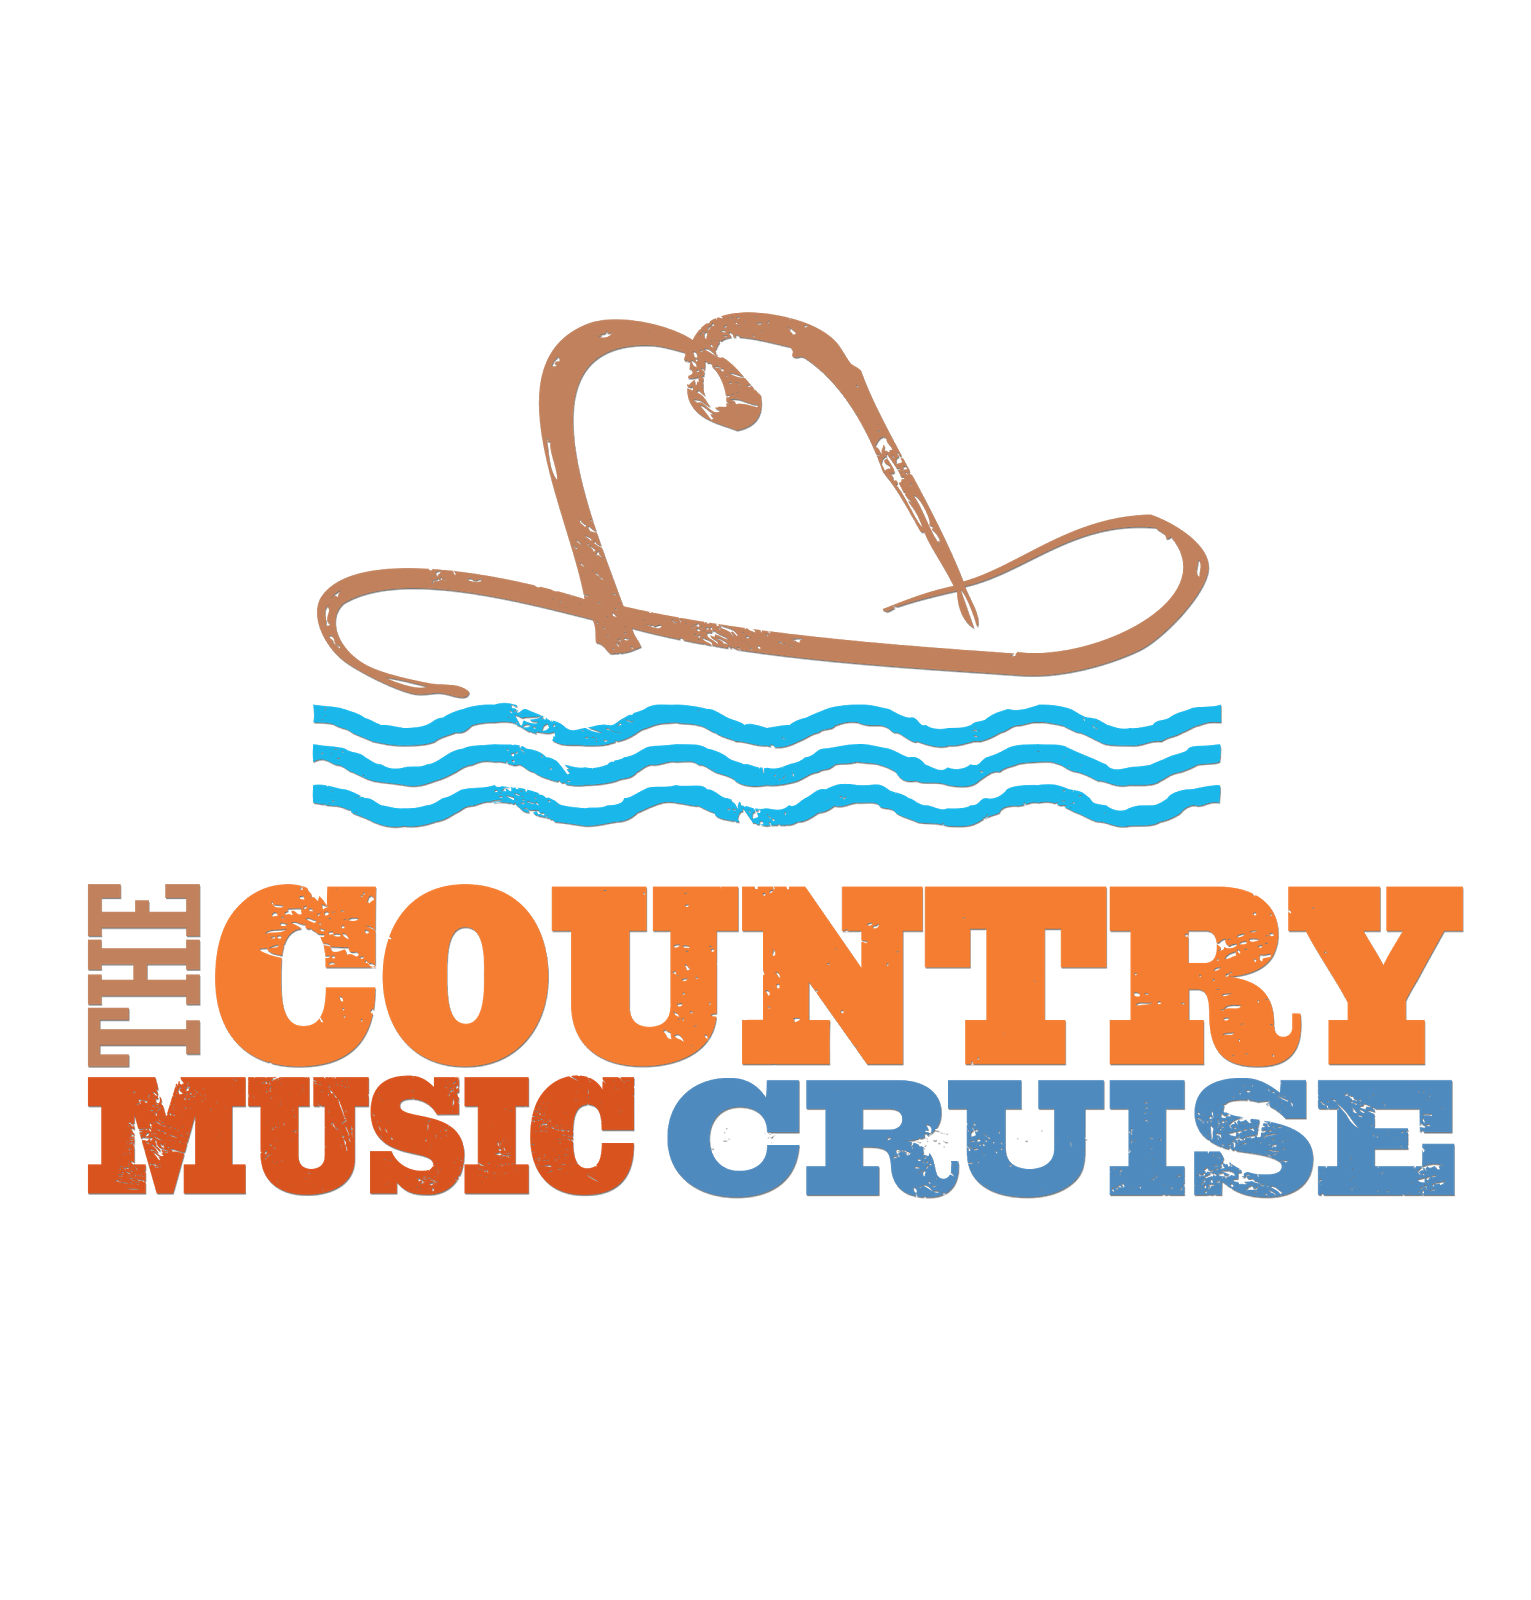 COUNTRY MUSIC CRUISE 2018 ON SALE NOW! GET UP CLOSE AND PERSONAL WITH THE BIGGEST NAMES IN COUNTRY!